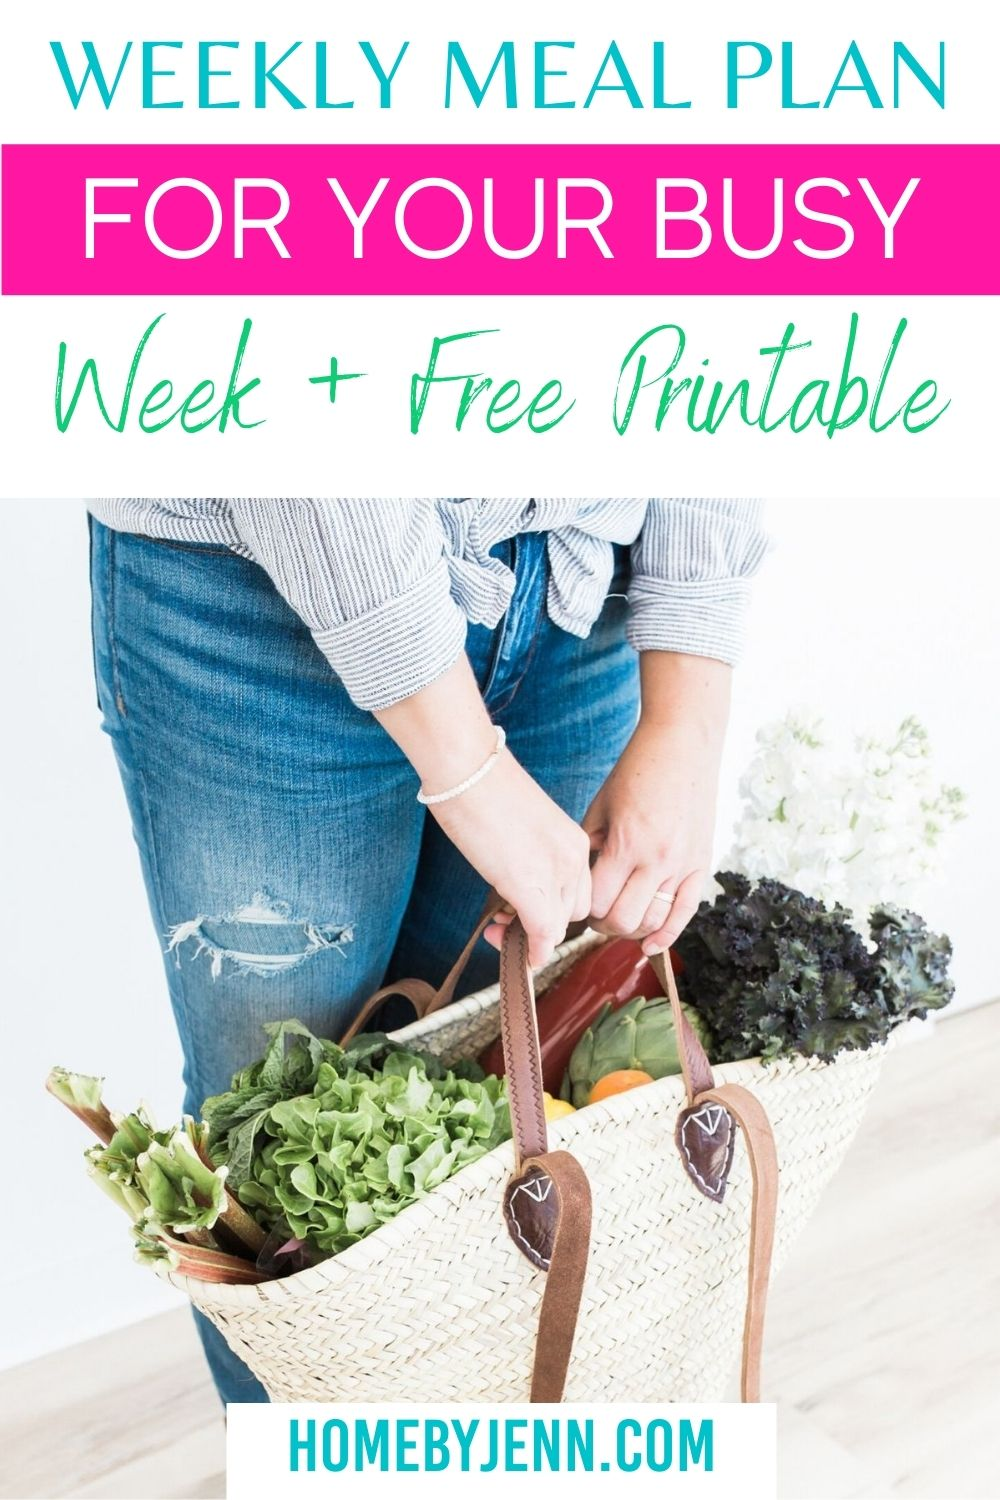 Creating a weekly meal plan can be pretty tricky, especially when you have so many people to feed! Let me share ideas to help get you started and recipes. #mealplan #busyweek #howto #gettingstarted #recipes #healthy #easy #weeklymealplan via @homebyjenn